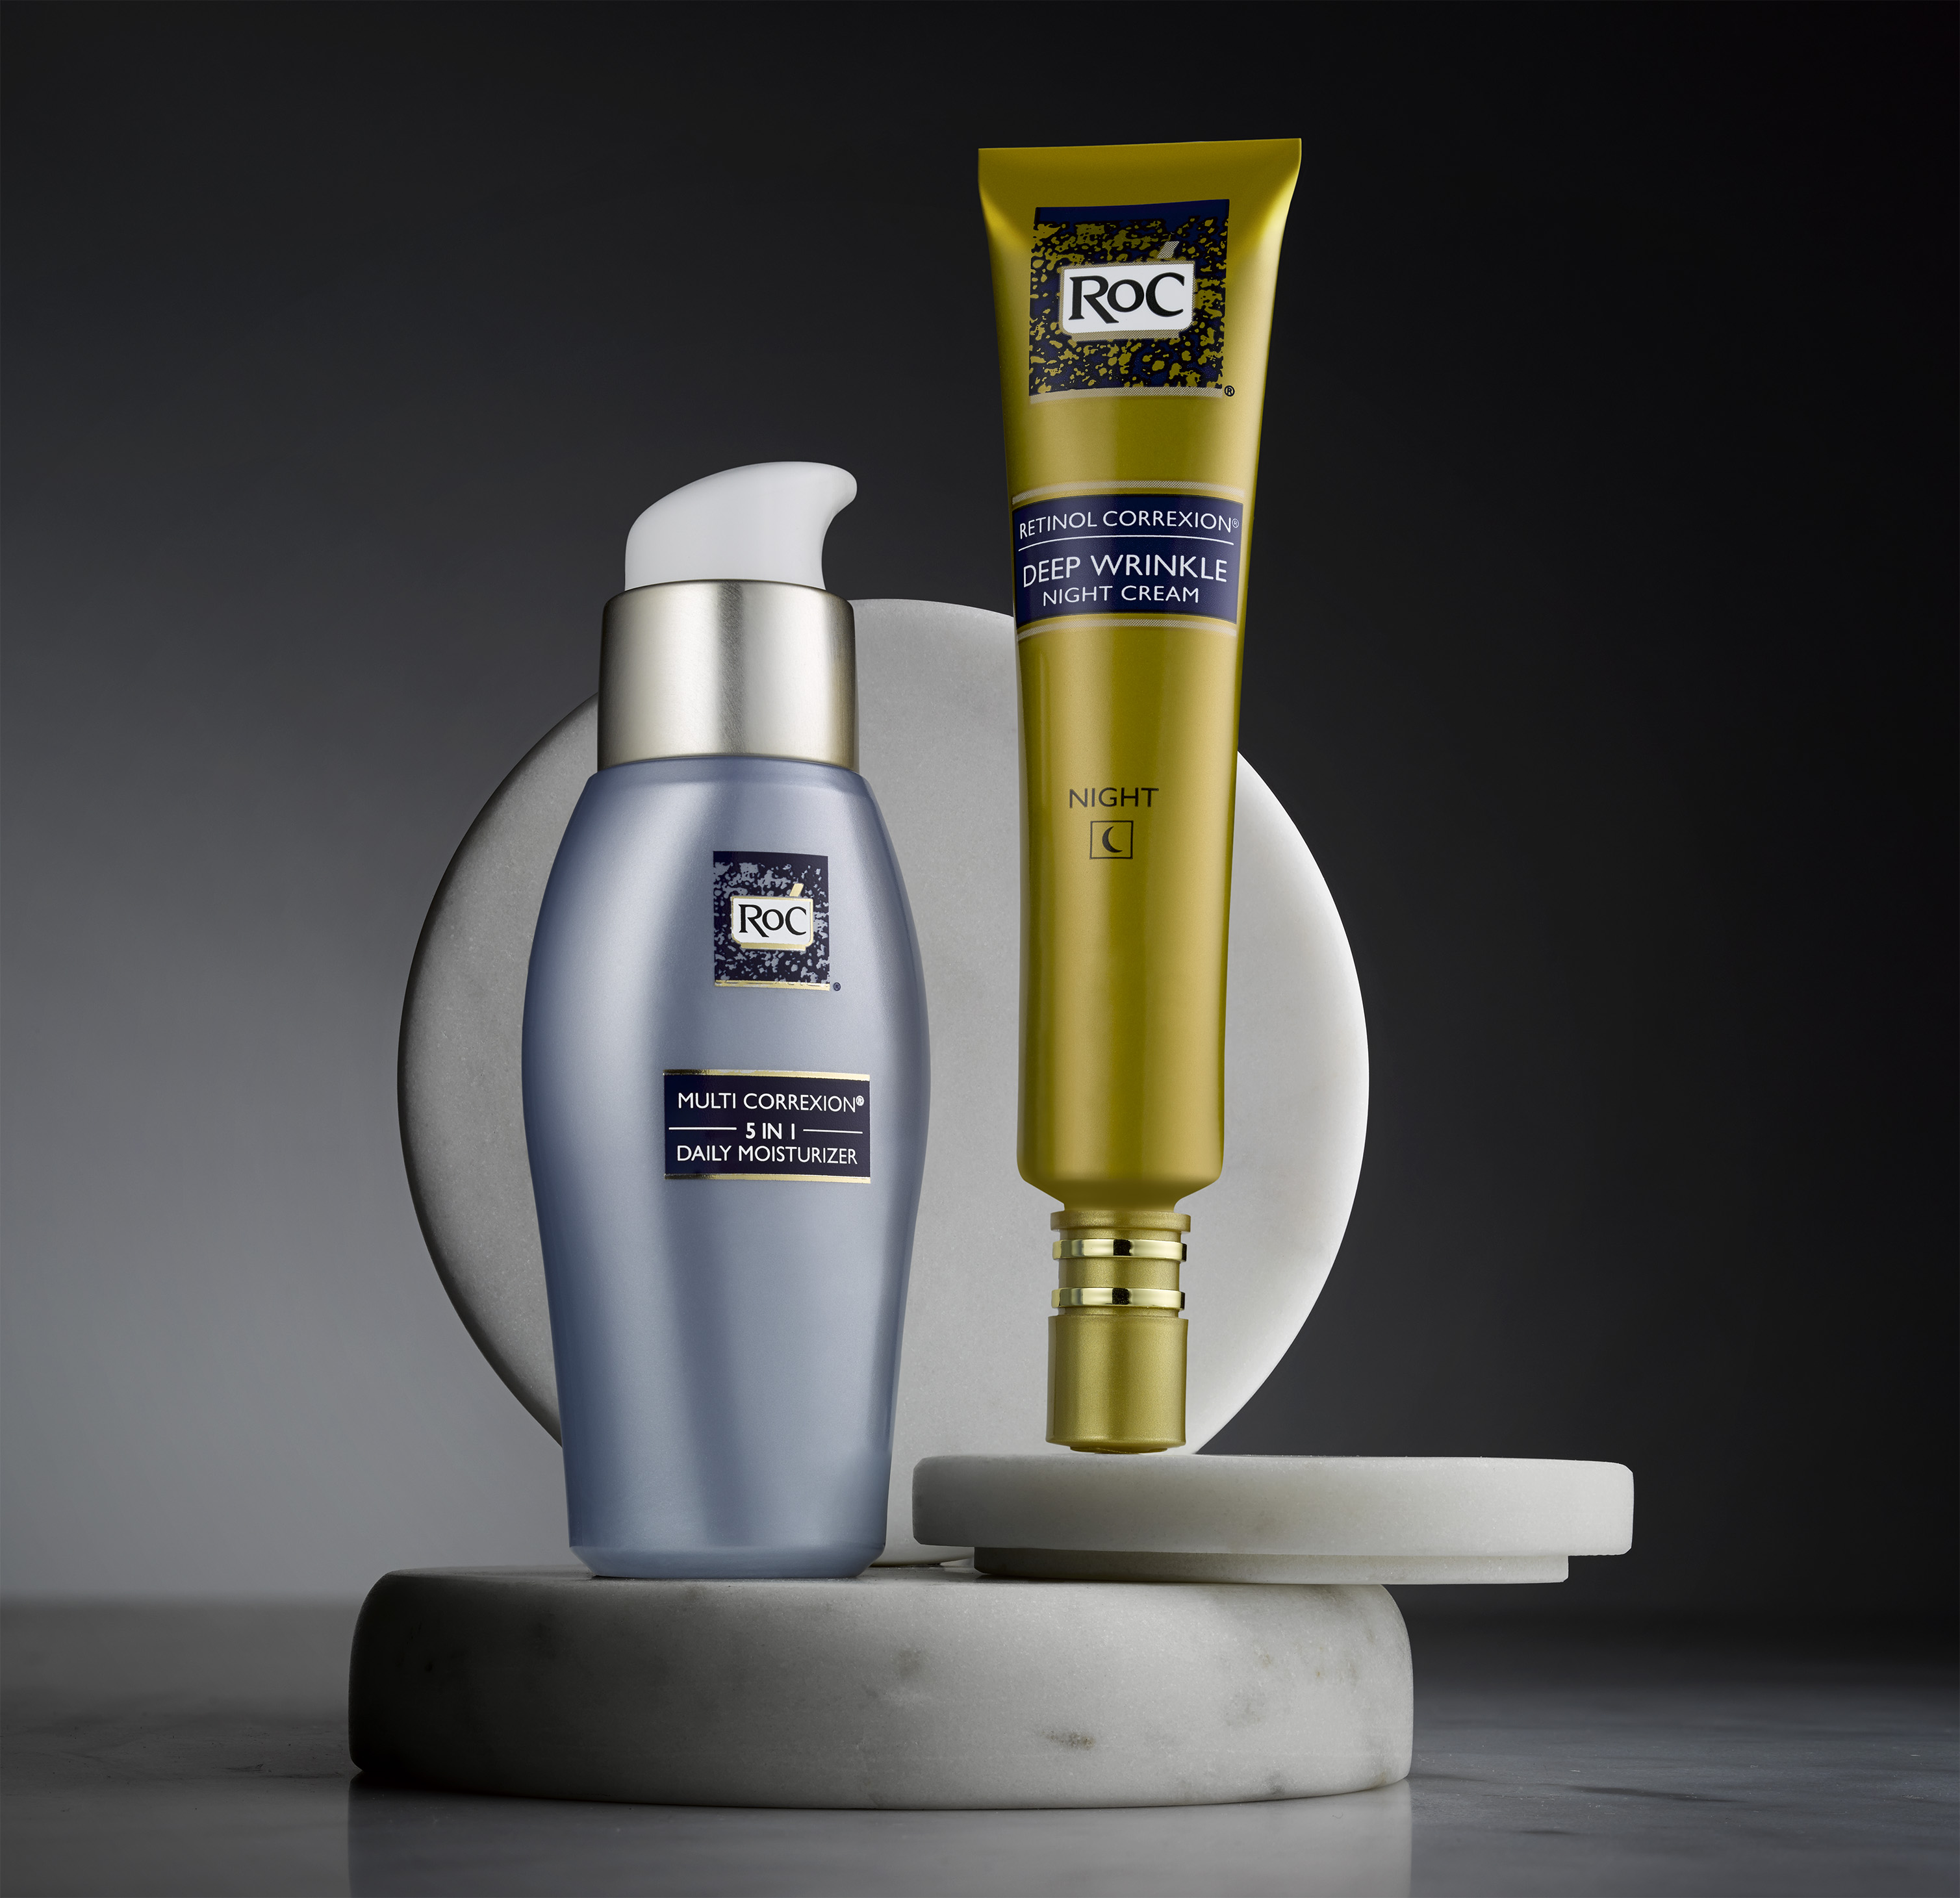 Roc makes a line of antiaging skin-care products.